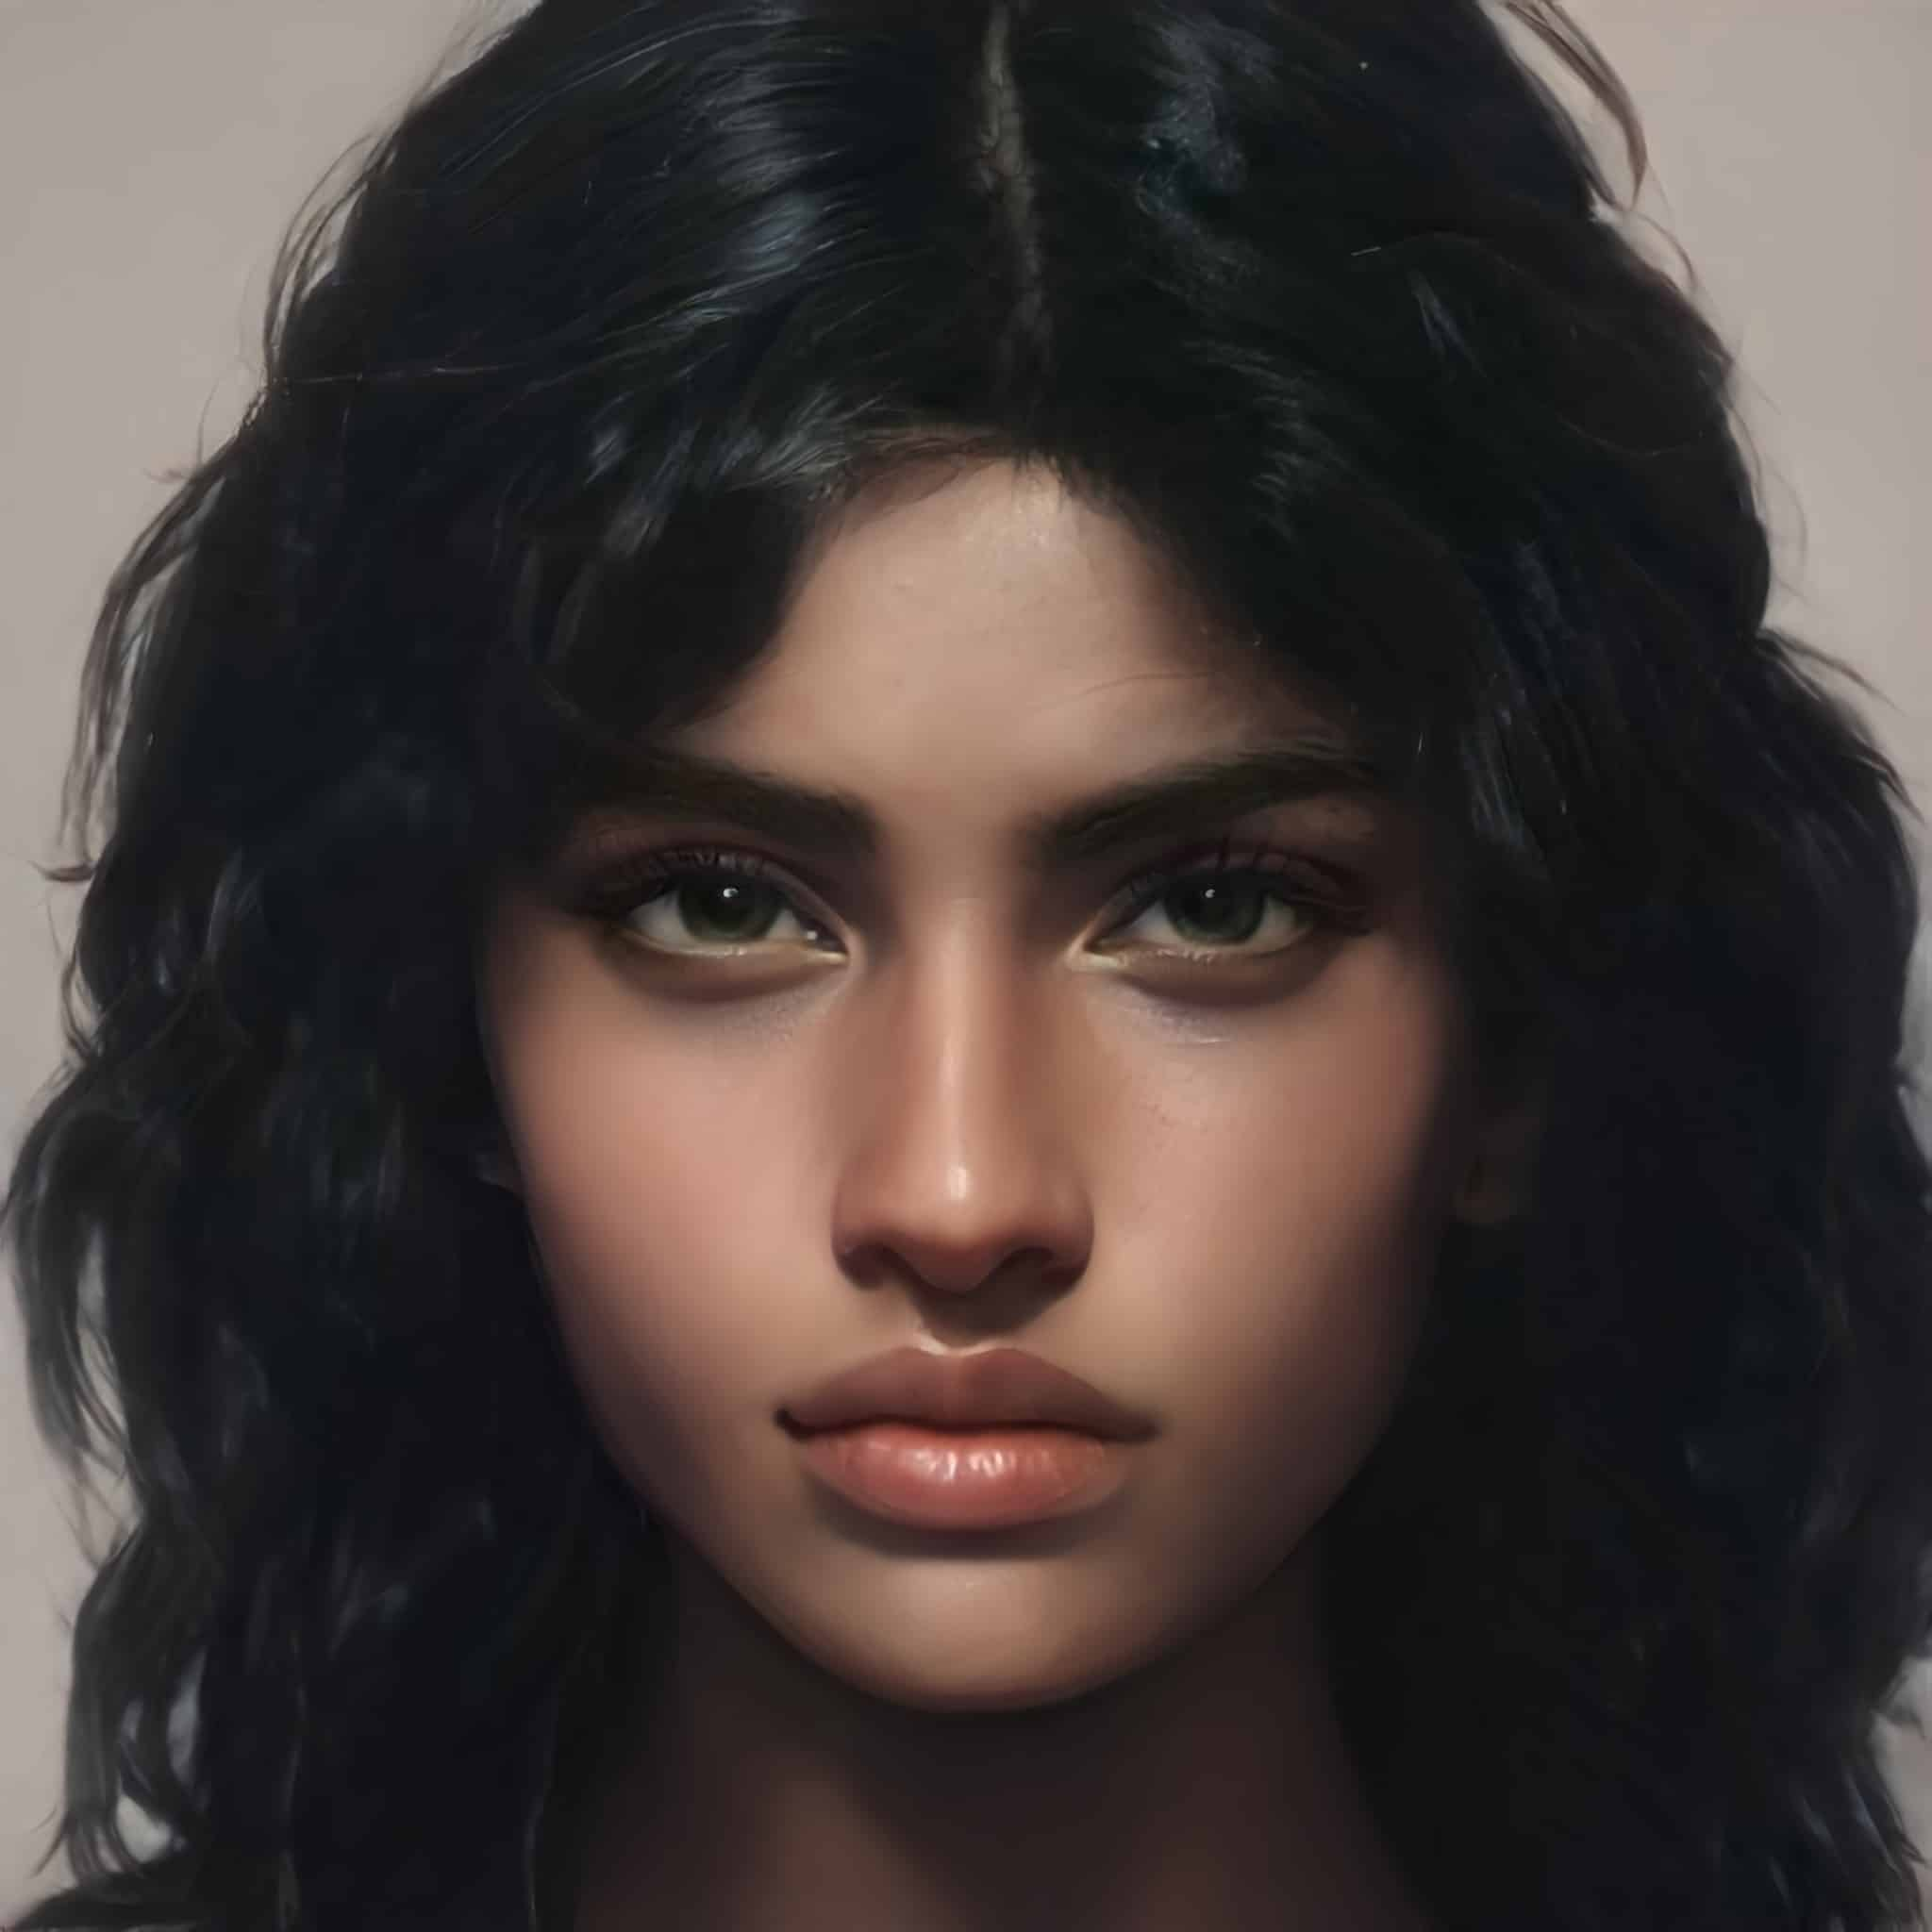 An image of a young woman with brown skin, black eyes, and black hair. She stares at the viewer with an unflinching expression.